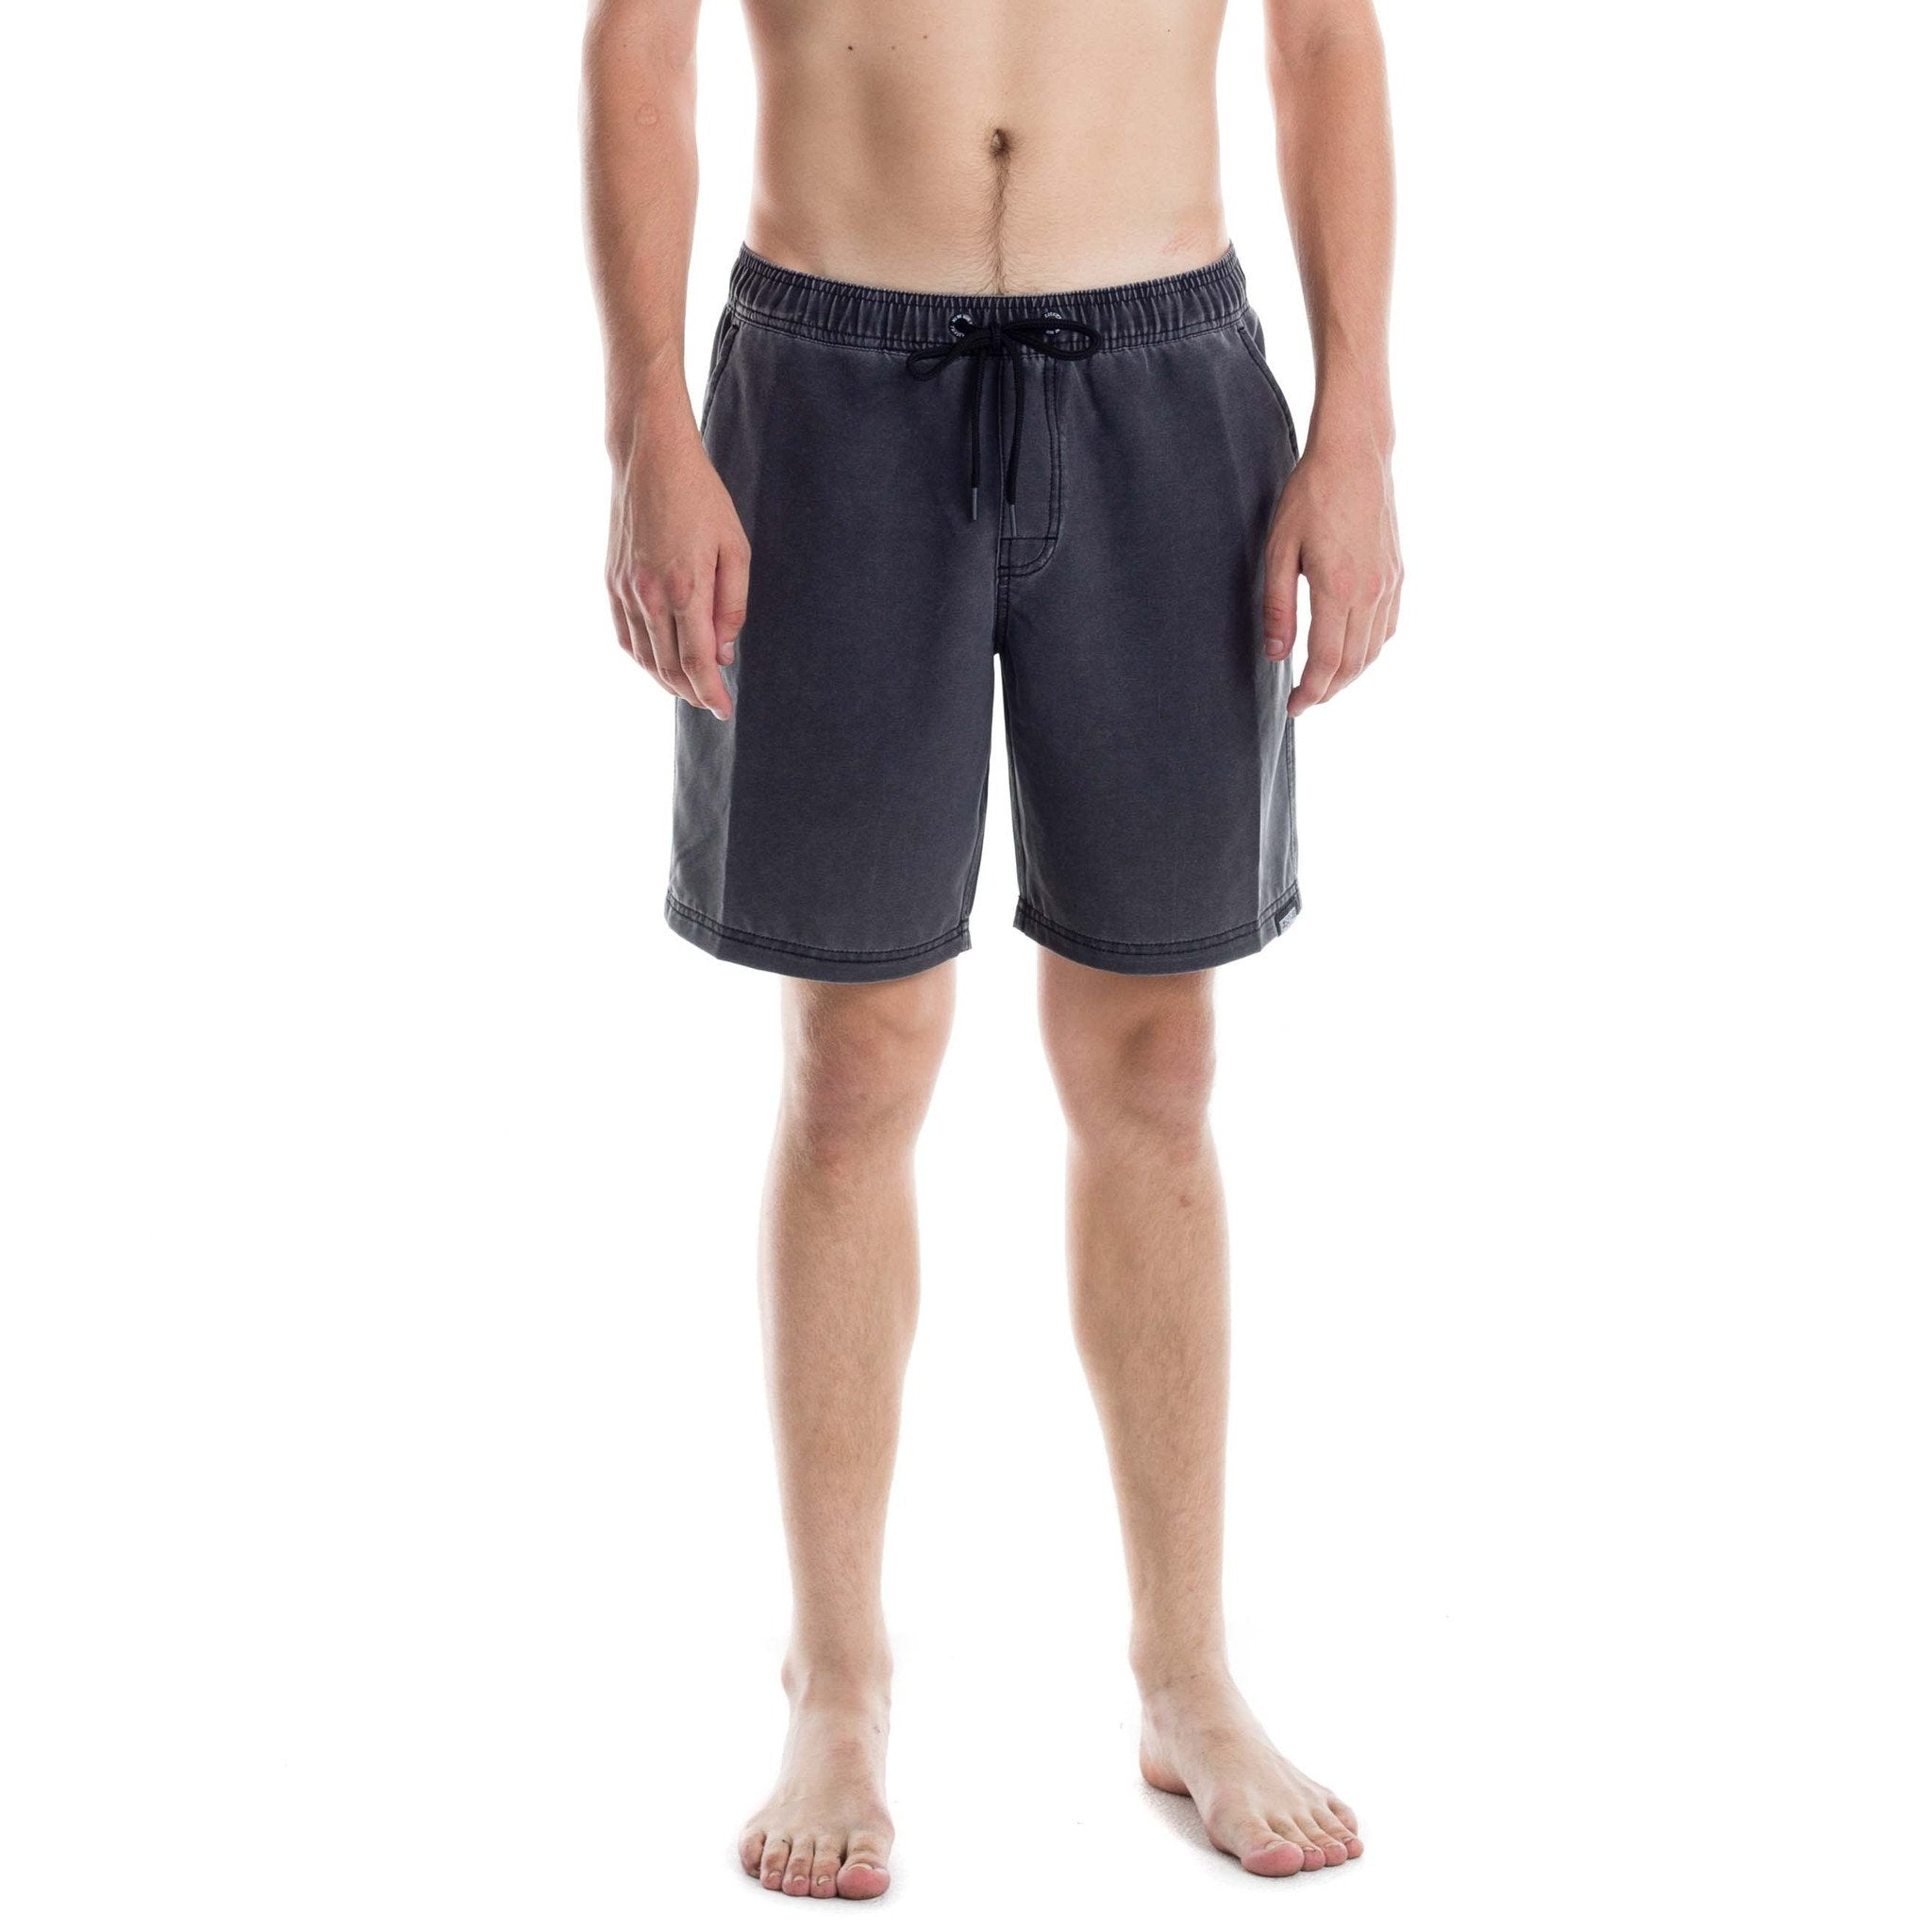 Dazed Boardshort - Black